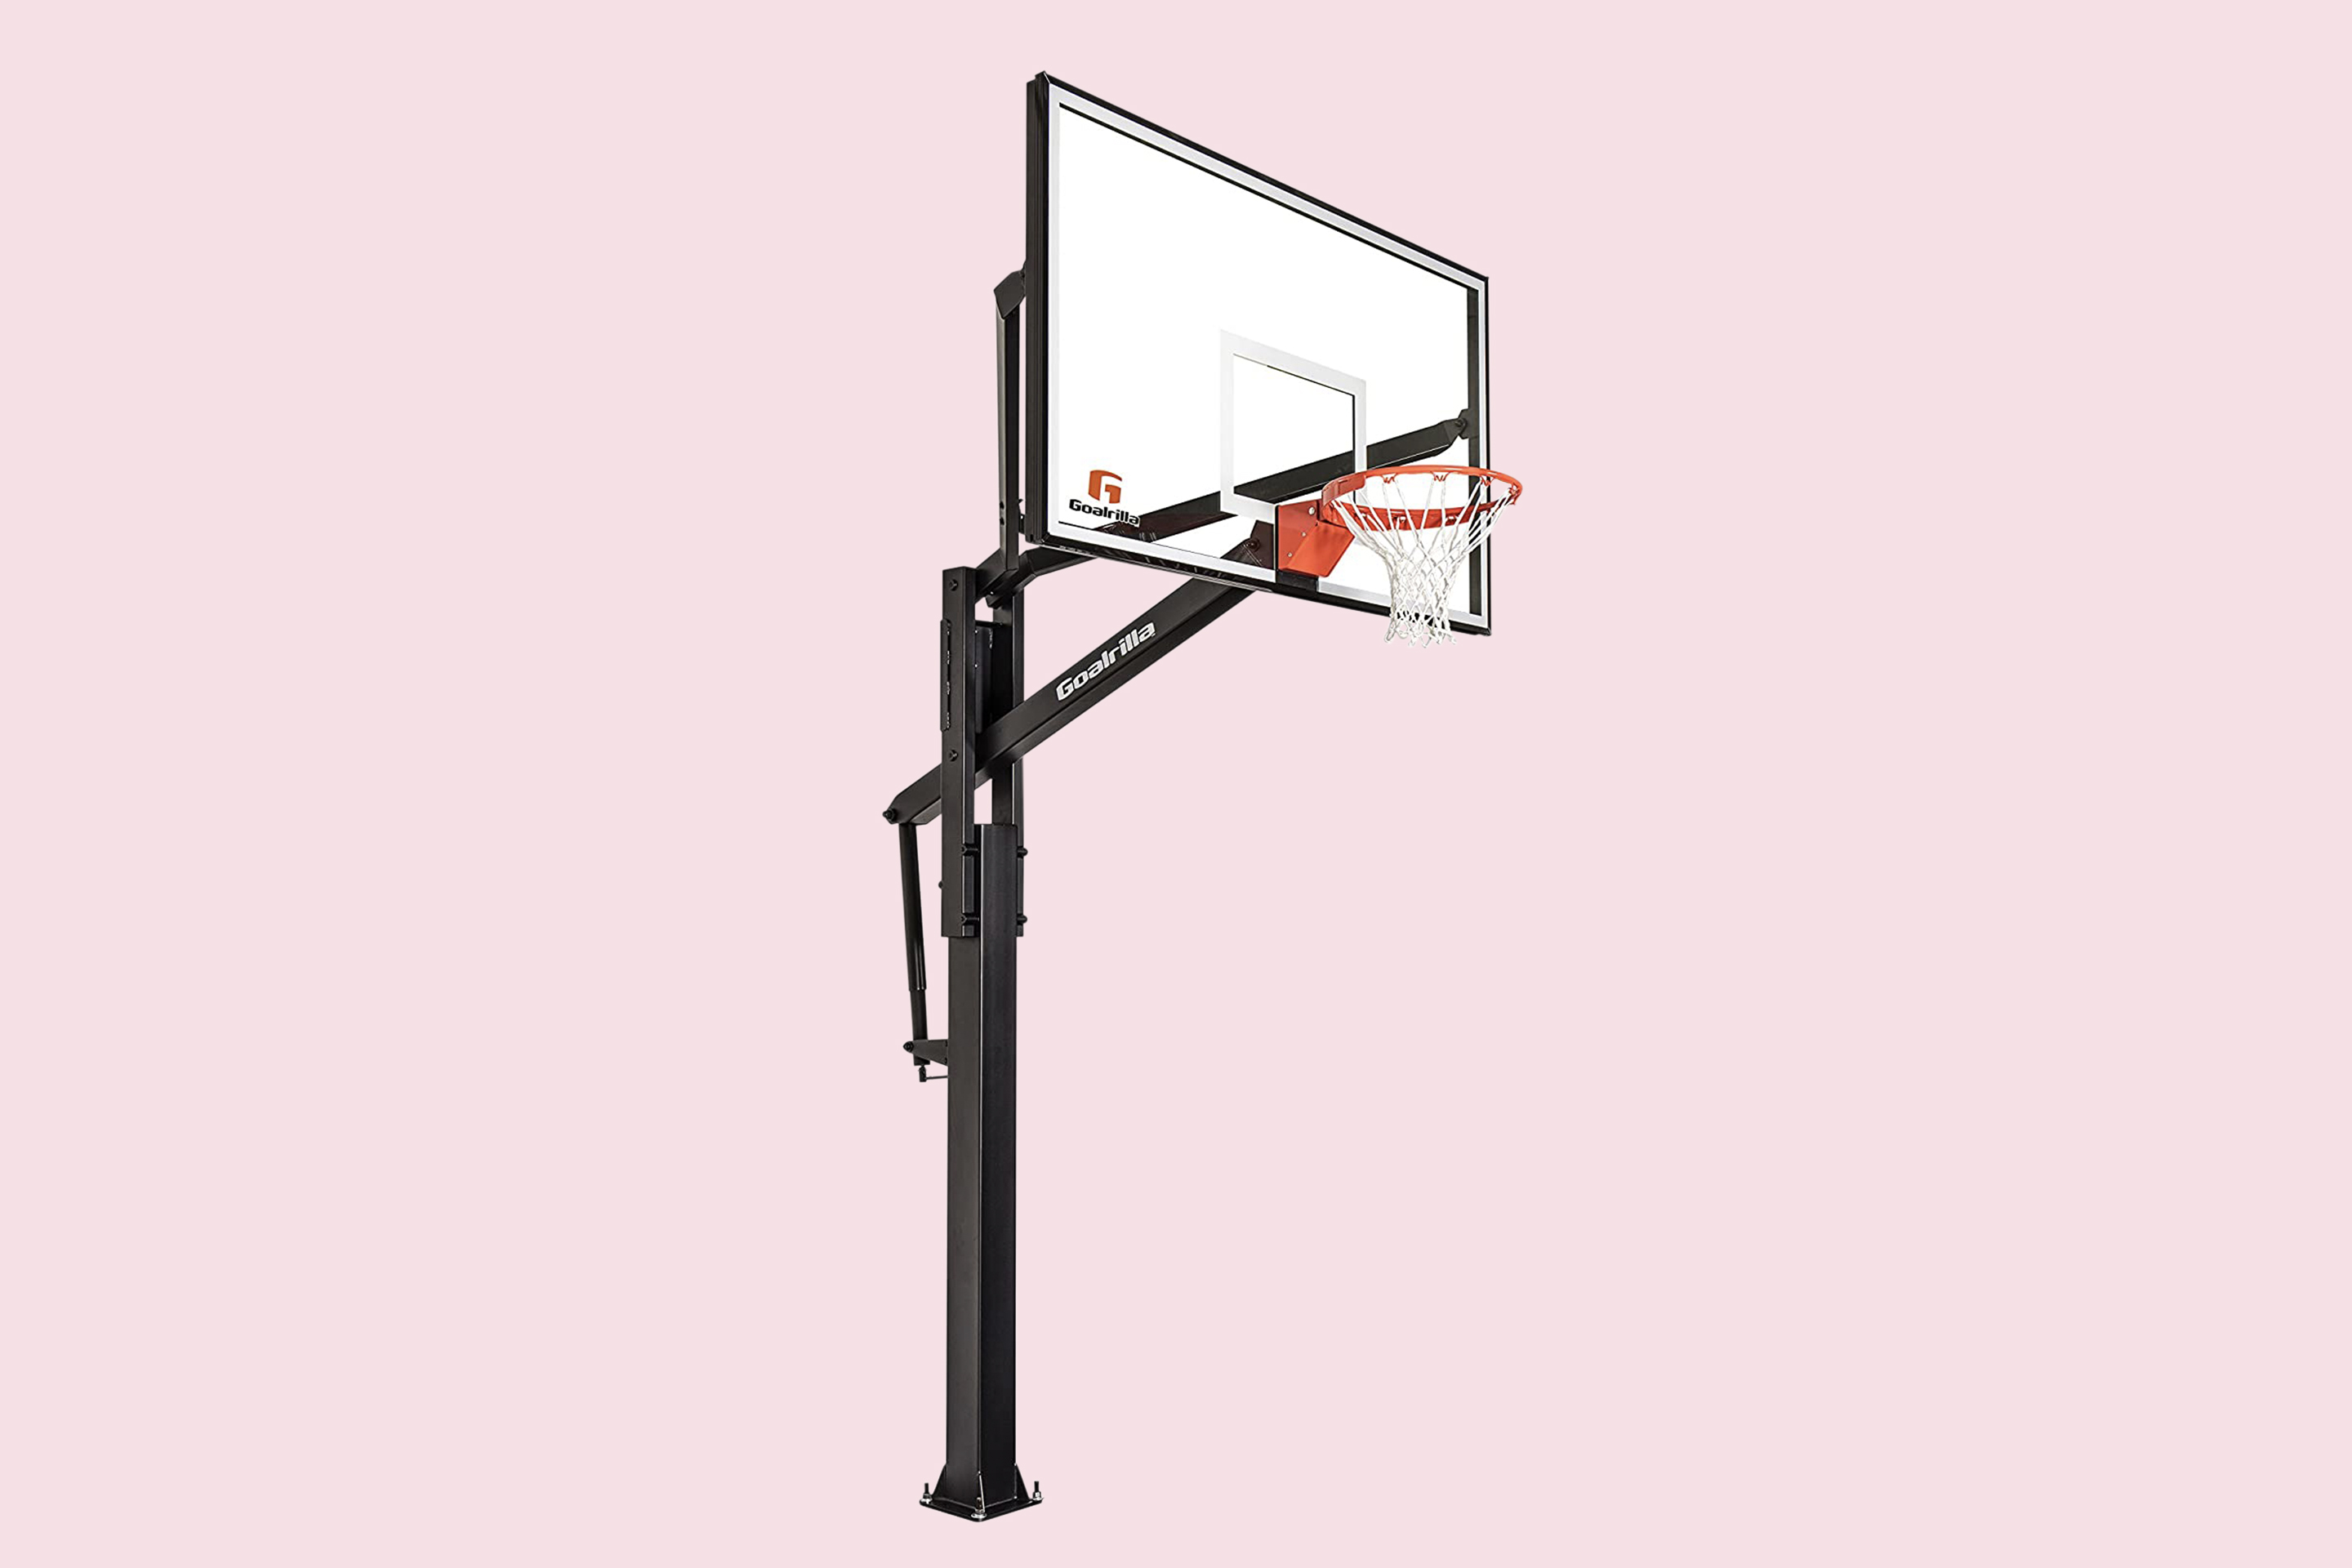 Goalrilla FT Series Basketball Hoops with Tempered Glass Backboard